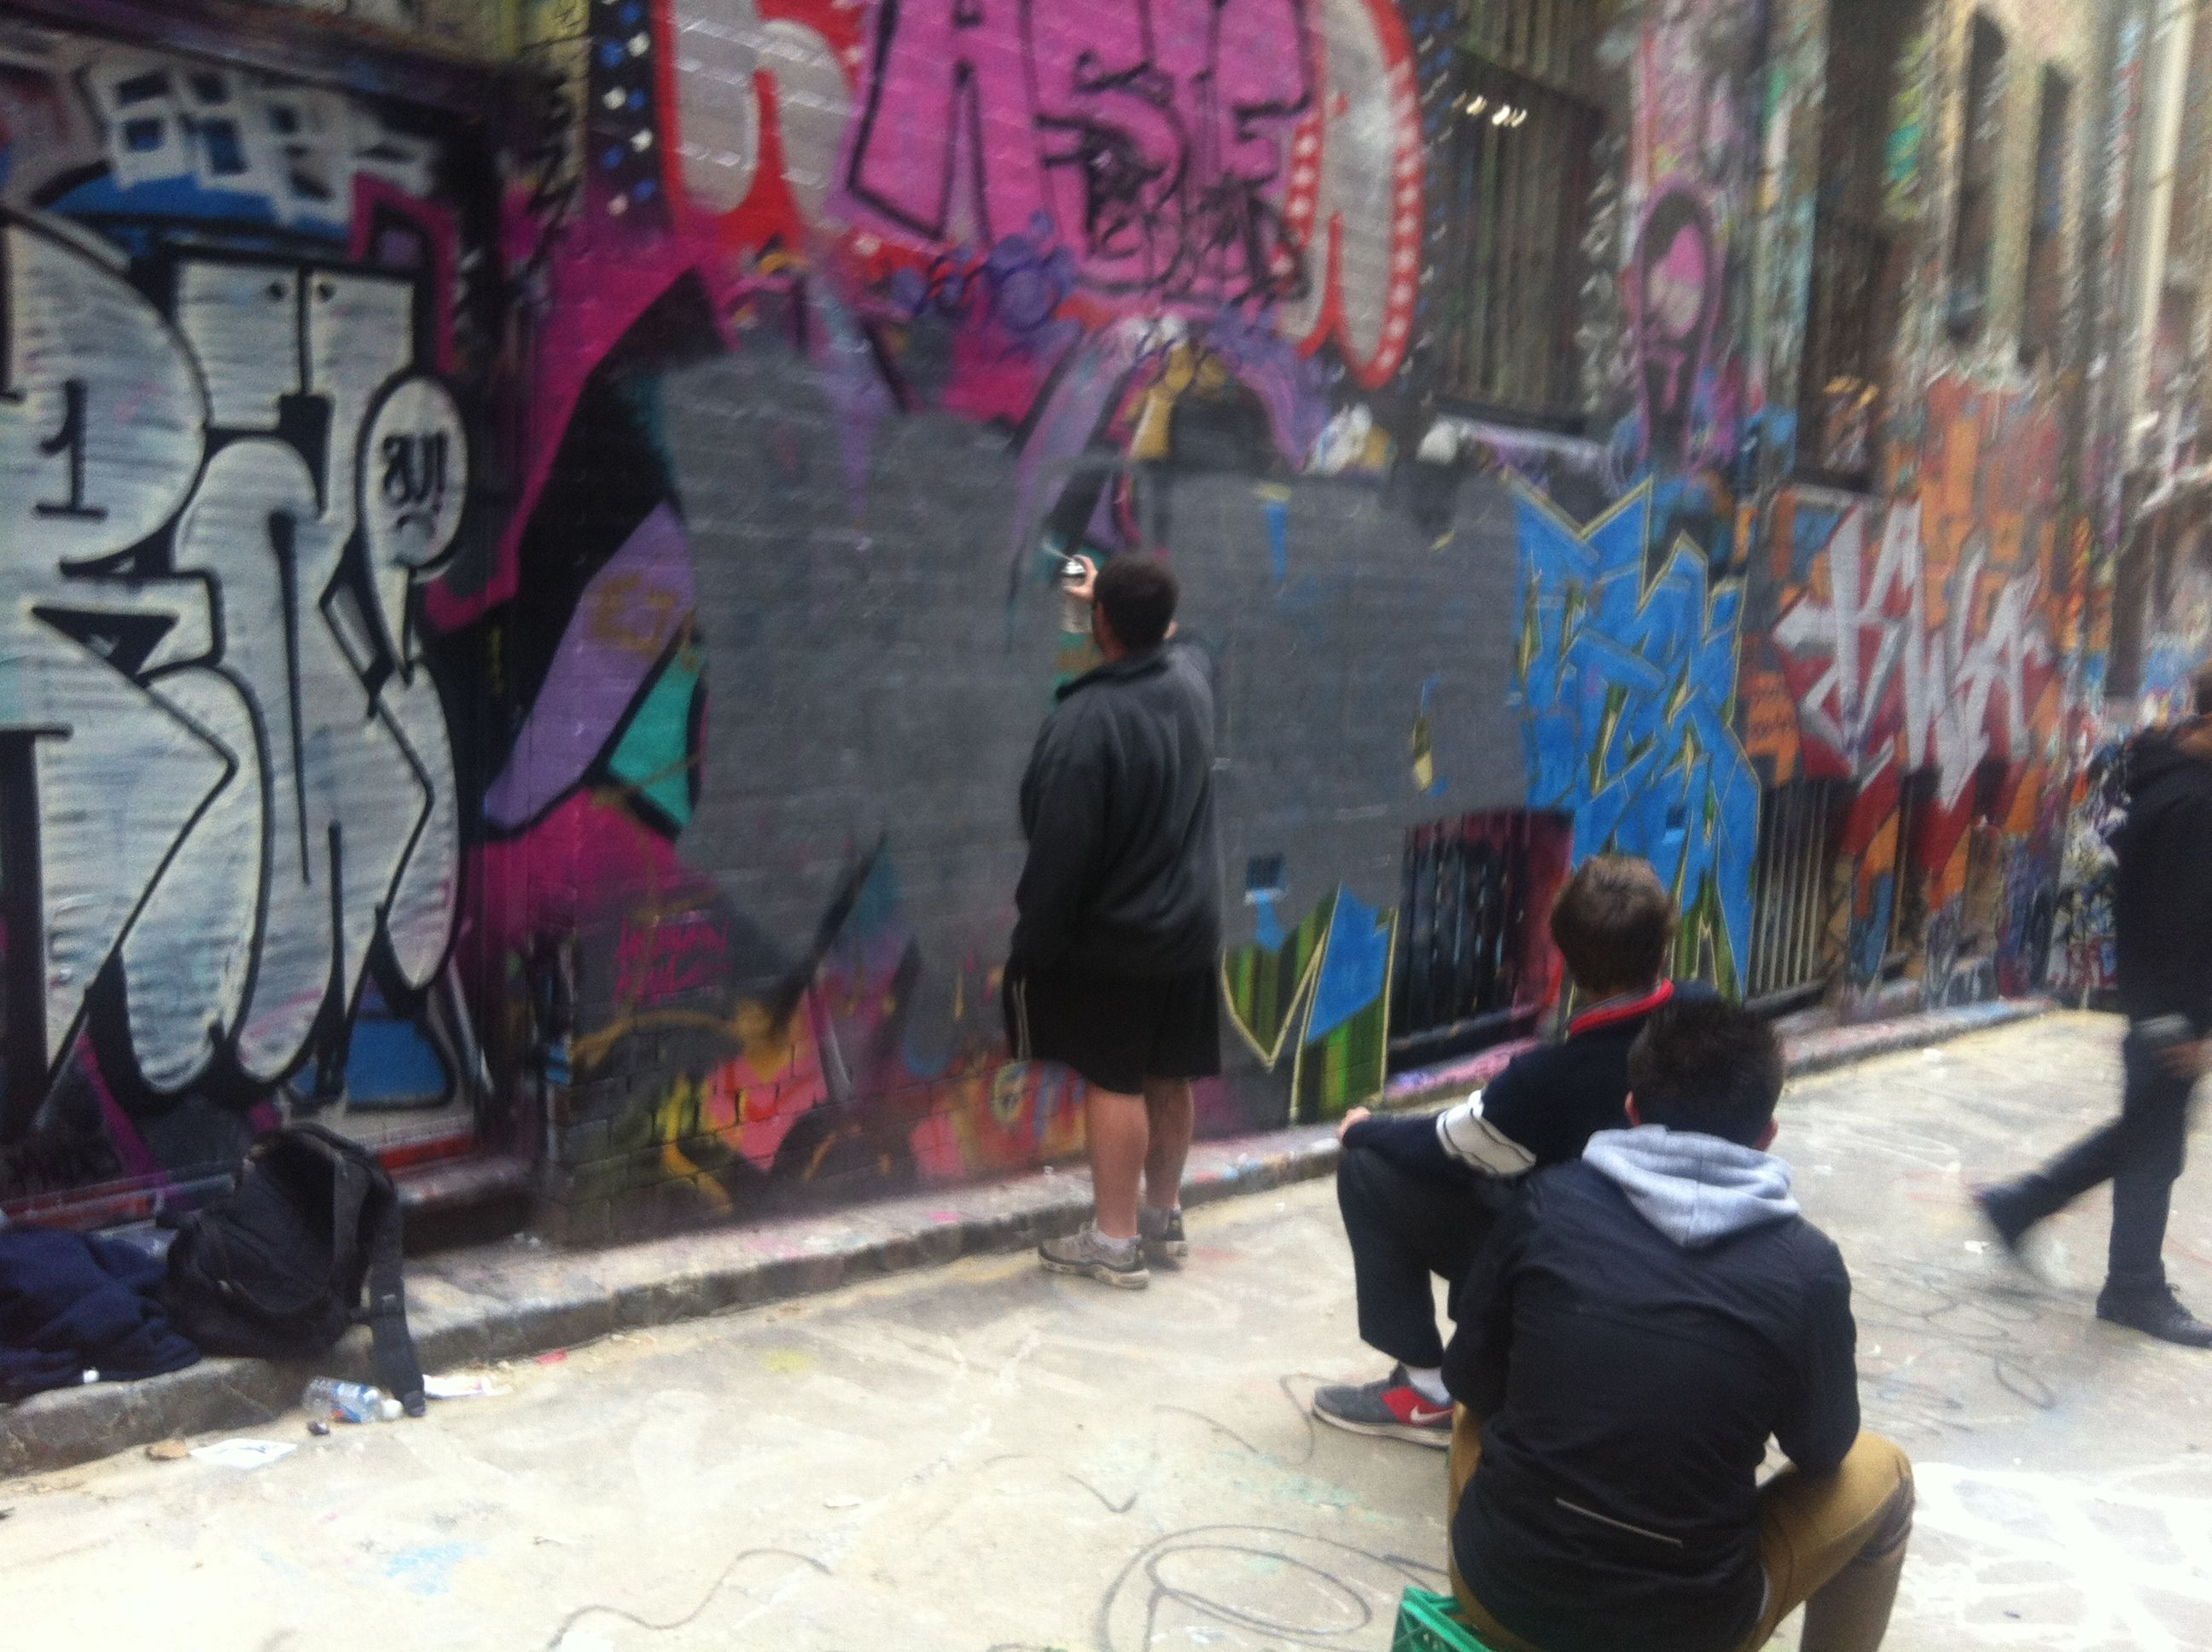 young artists at work Melbourne street, Artist at work